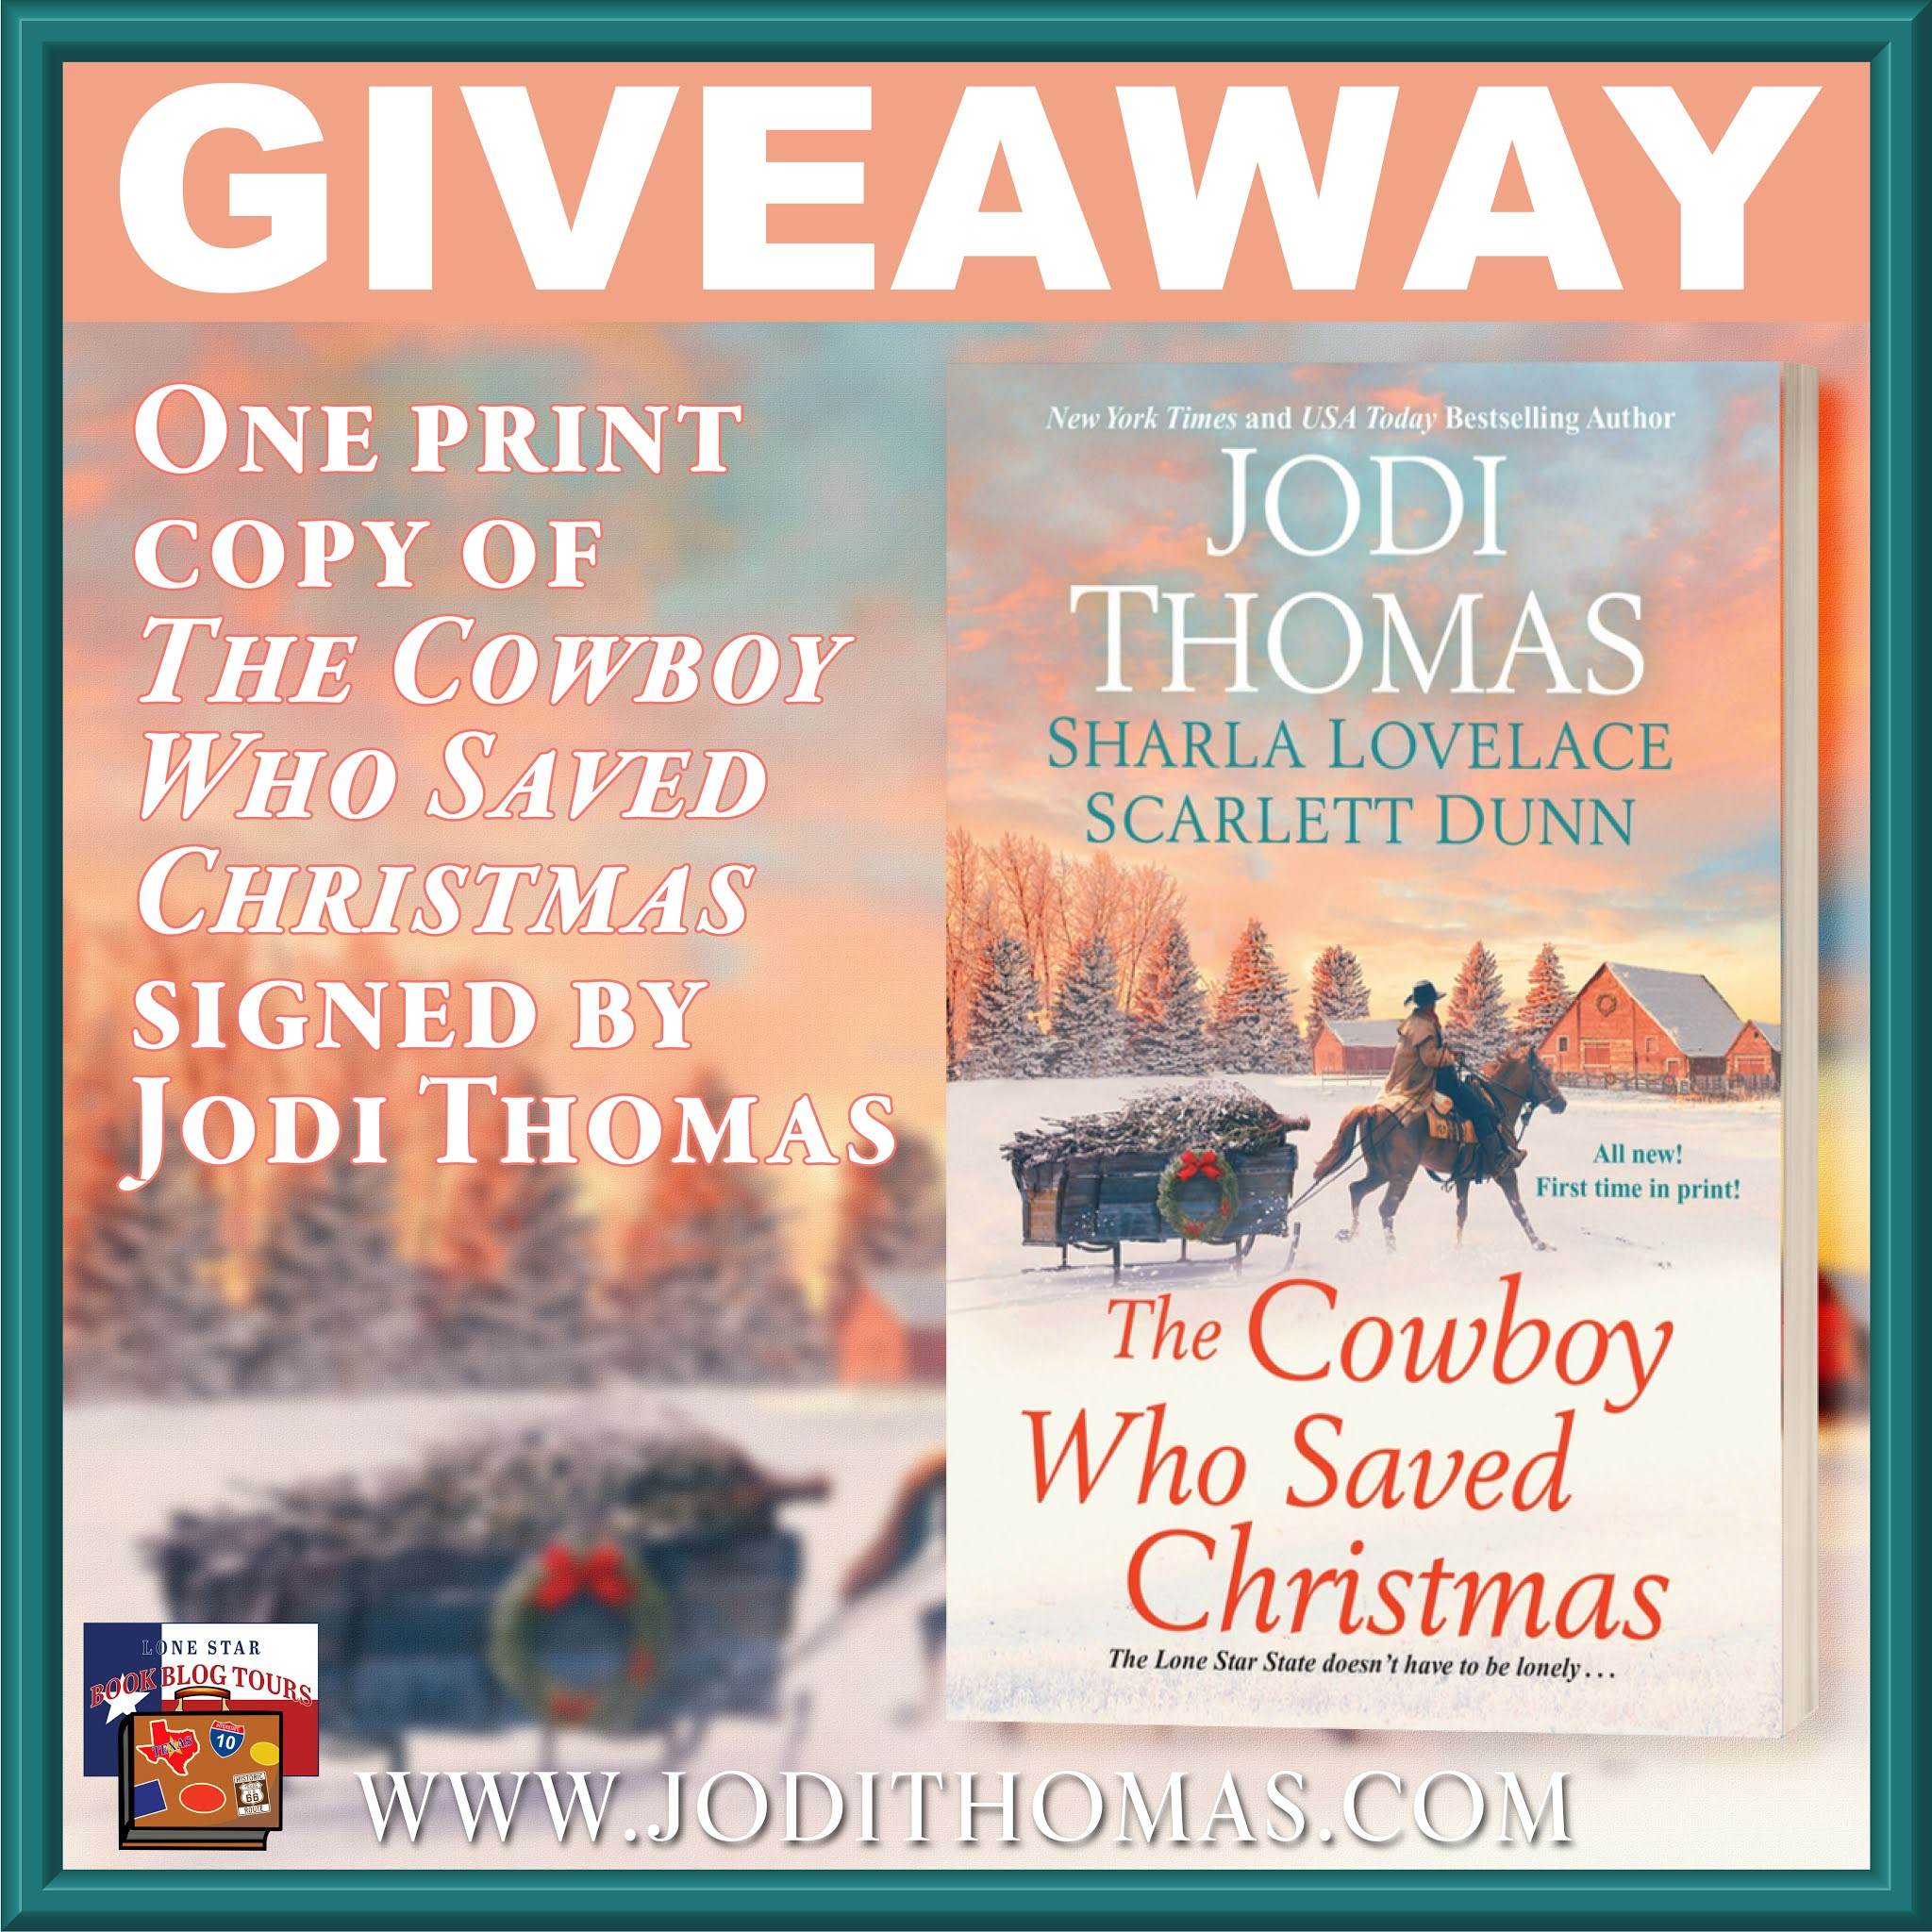 The Cowboy Who Saved Christmas tour giveaway graphic. Prizes to be awarded precede this image in the post text.